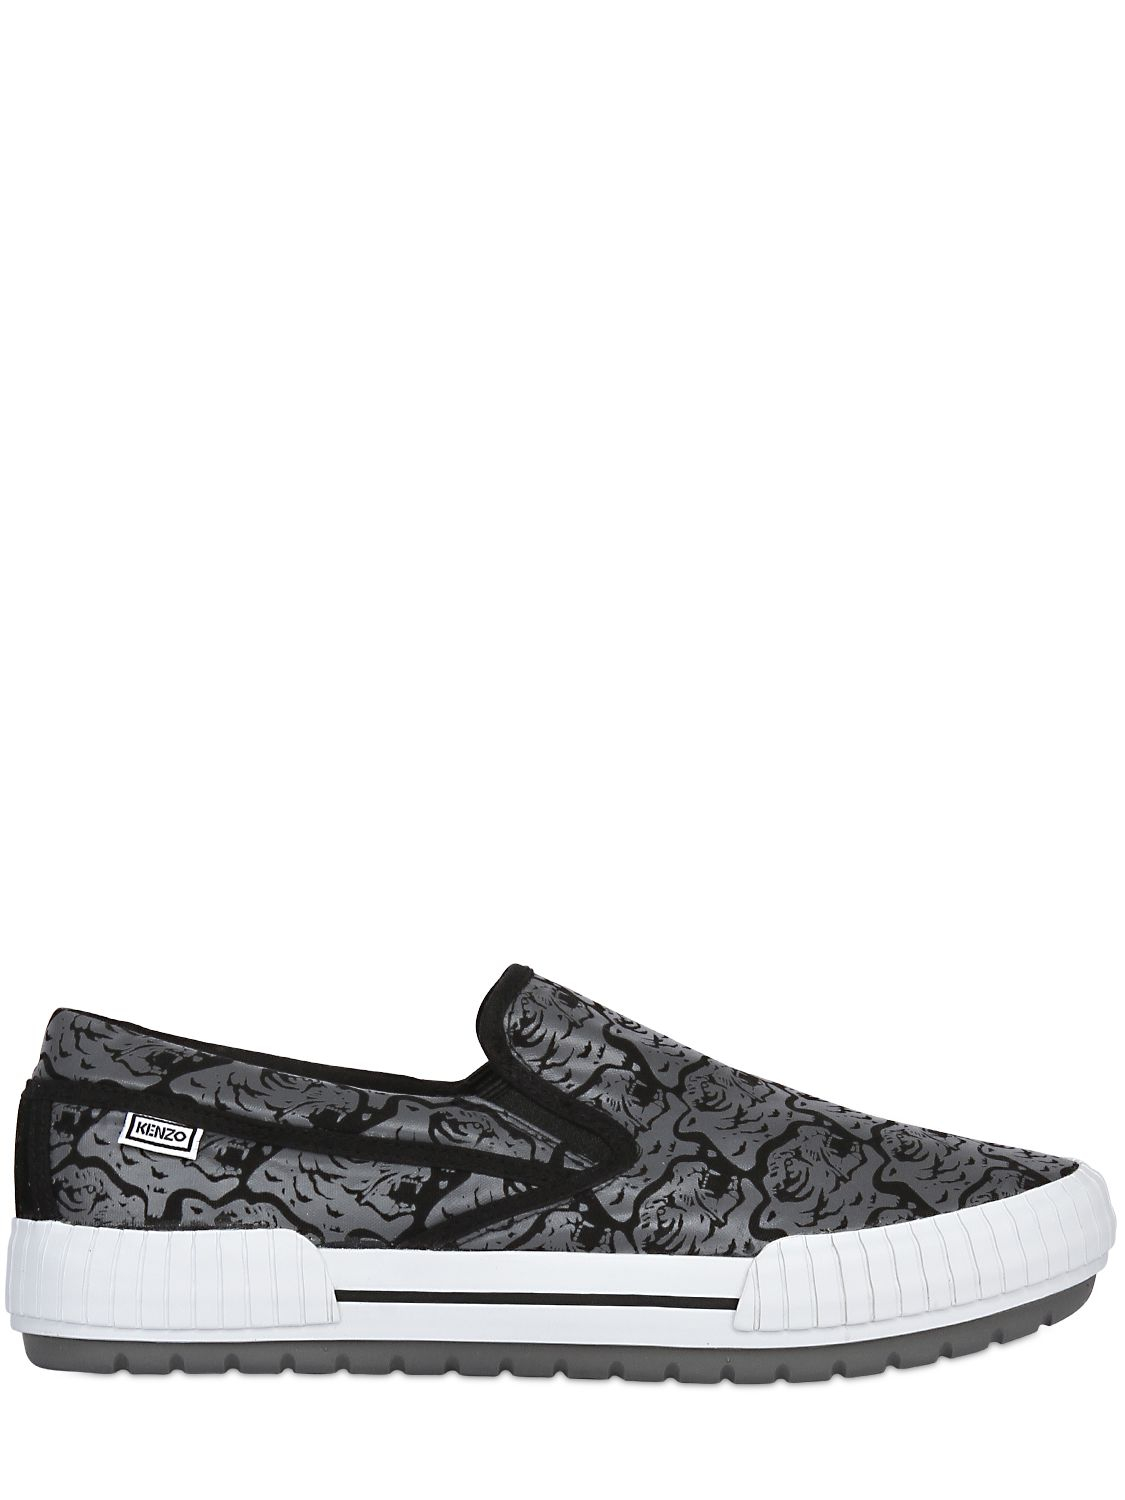 63e0049d Lyst - KENZO Tiger Heads Cotton Canvas Slip On Shoes in Black for Men